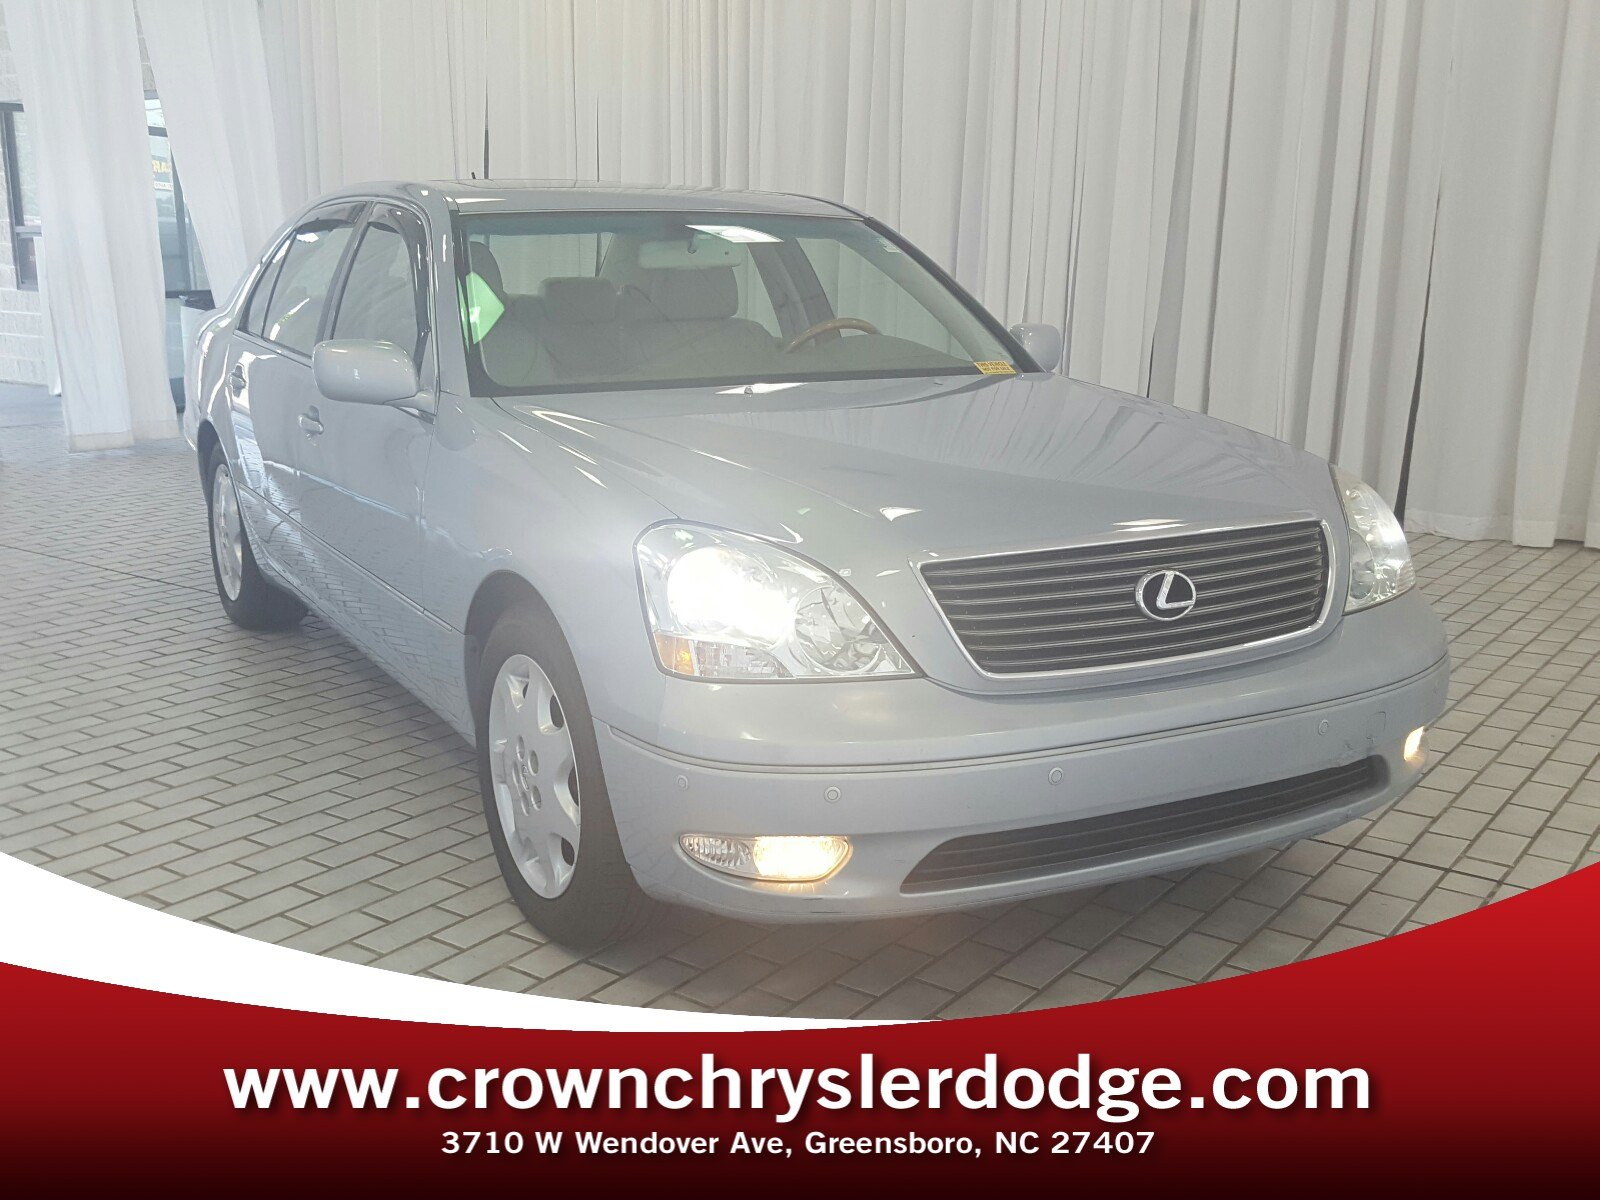 2003 Lexus In North Carolina For Sale ▷ Used Cars Buysellsearch